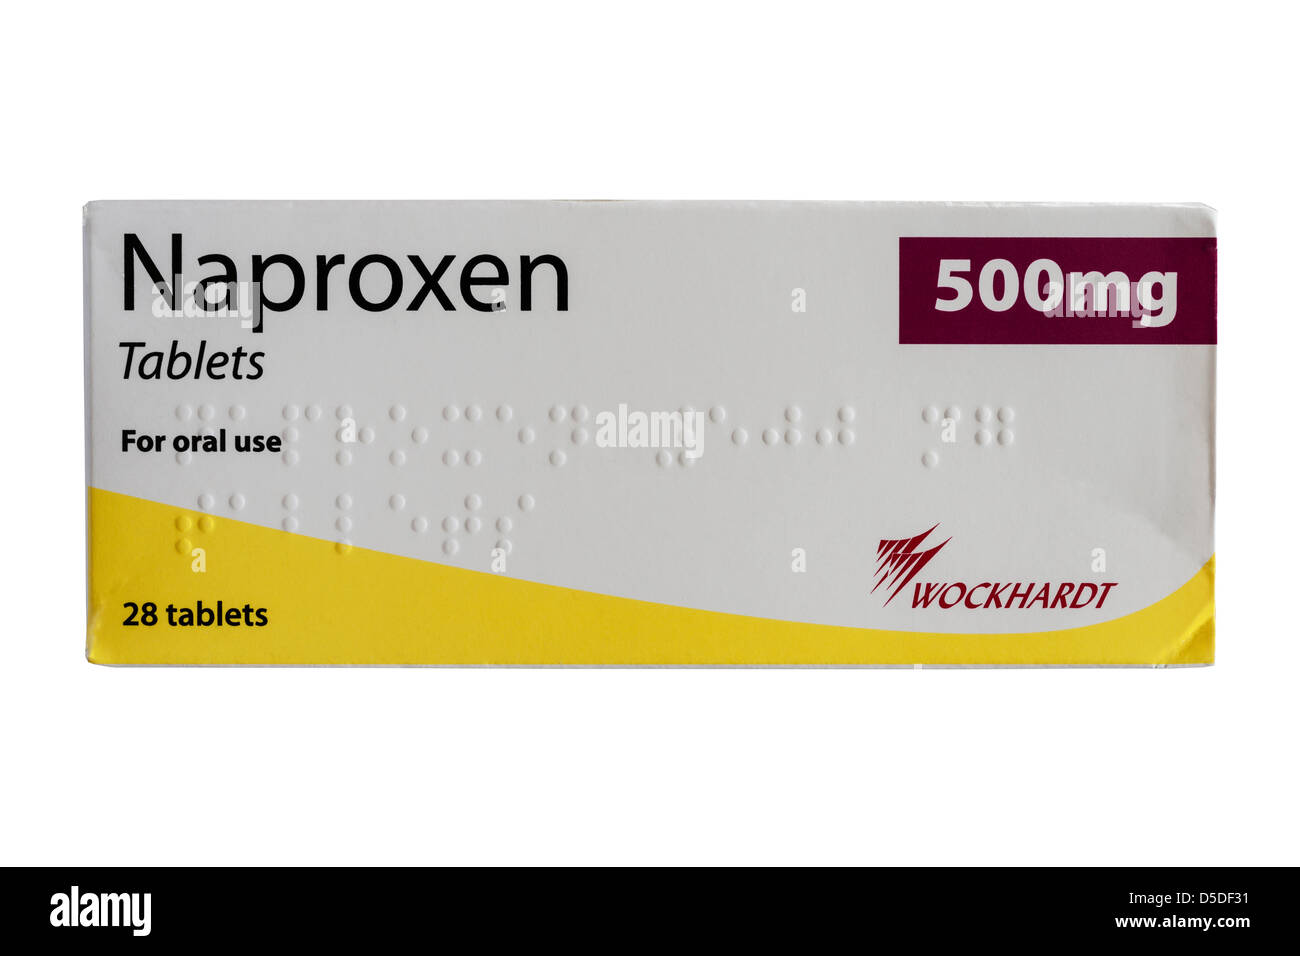 A box of Naproxen 500mg tablets for pain relief and ...